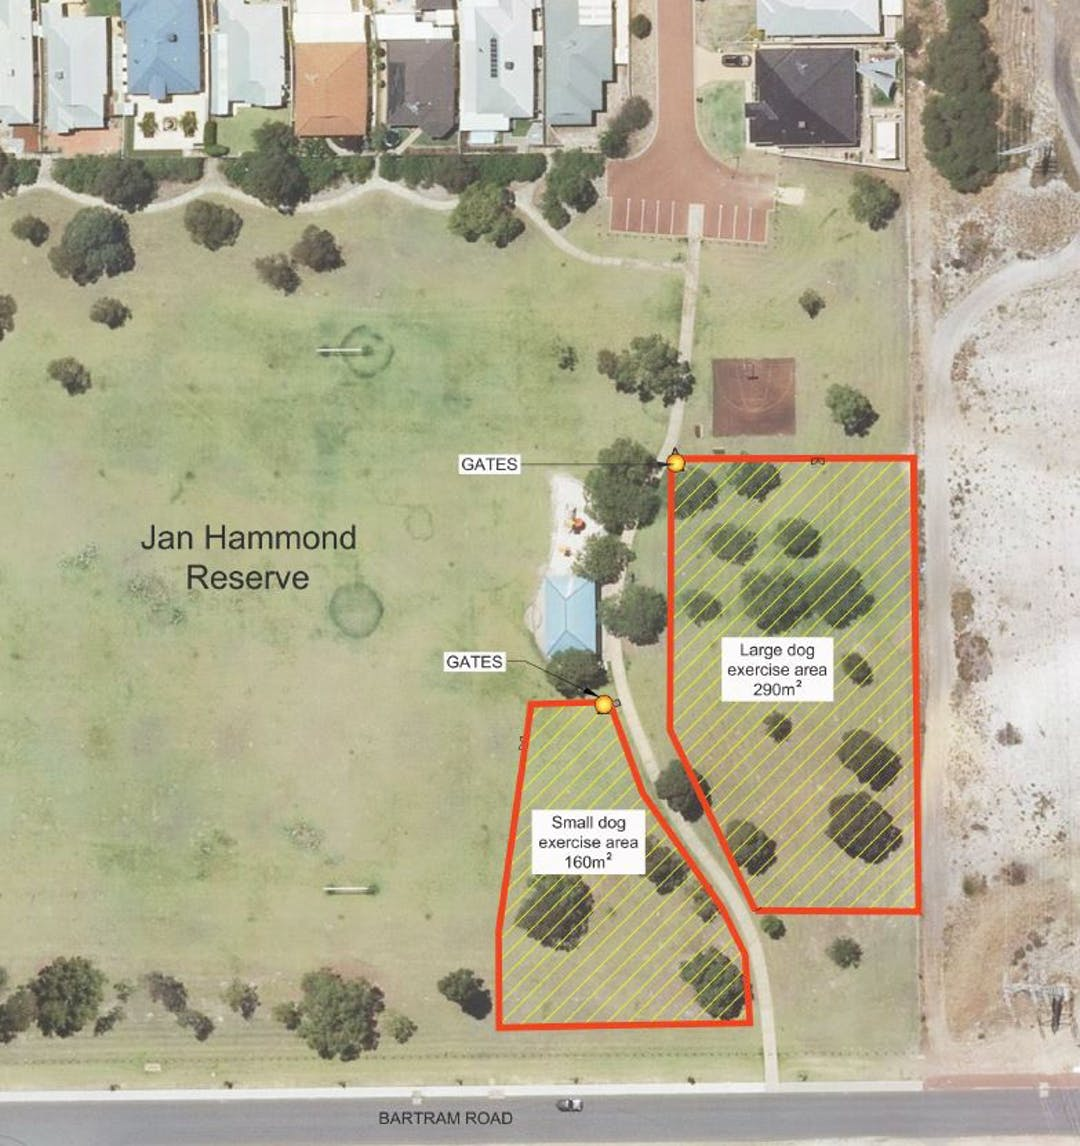 Proposed off leash enclosed dog park